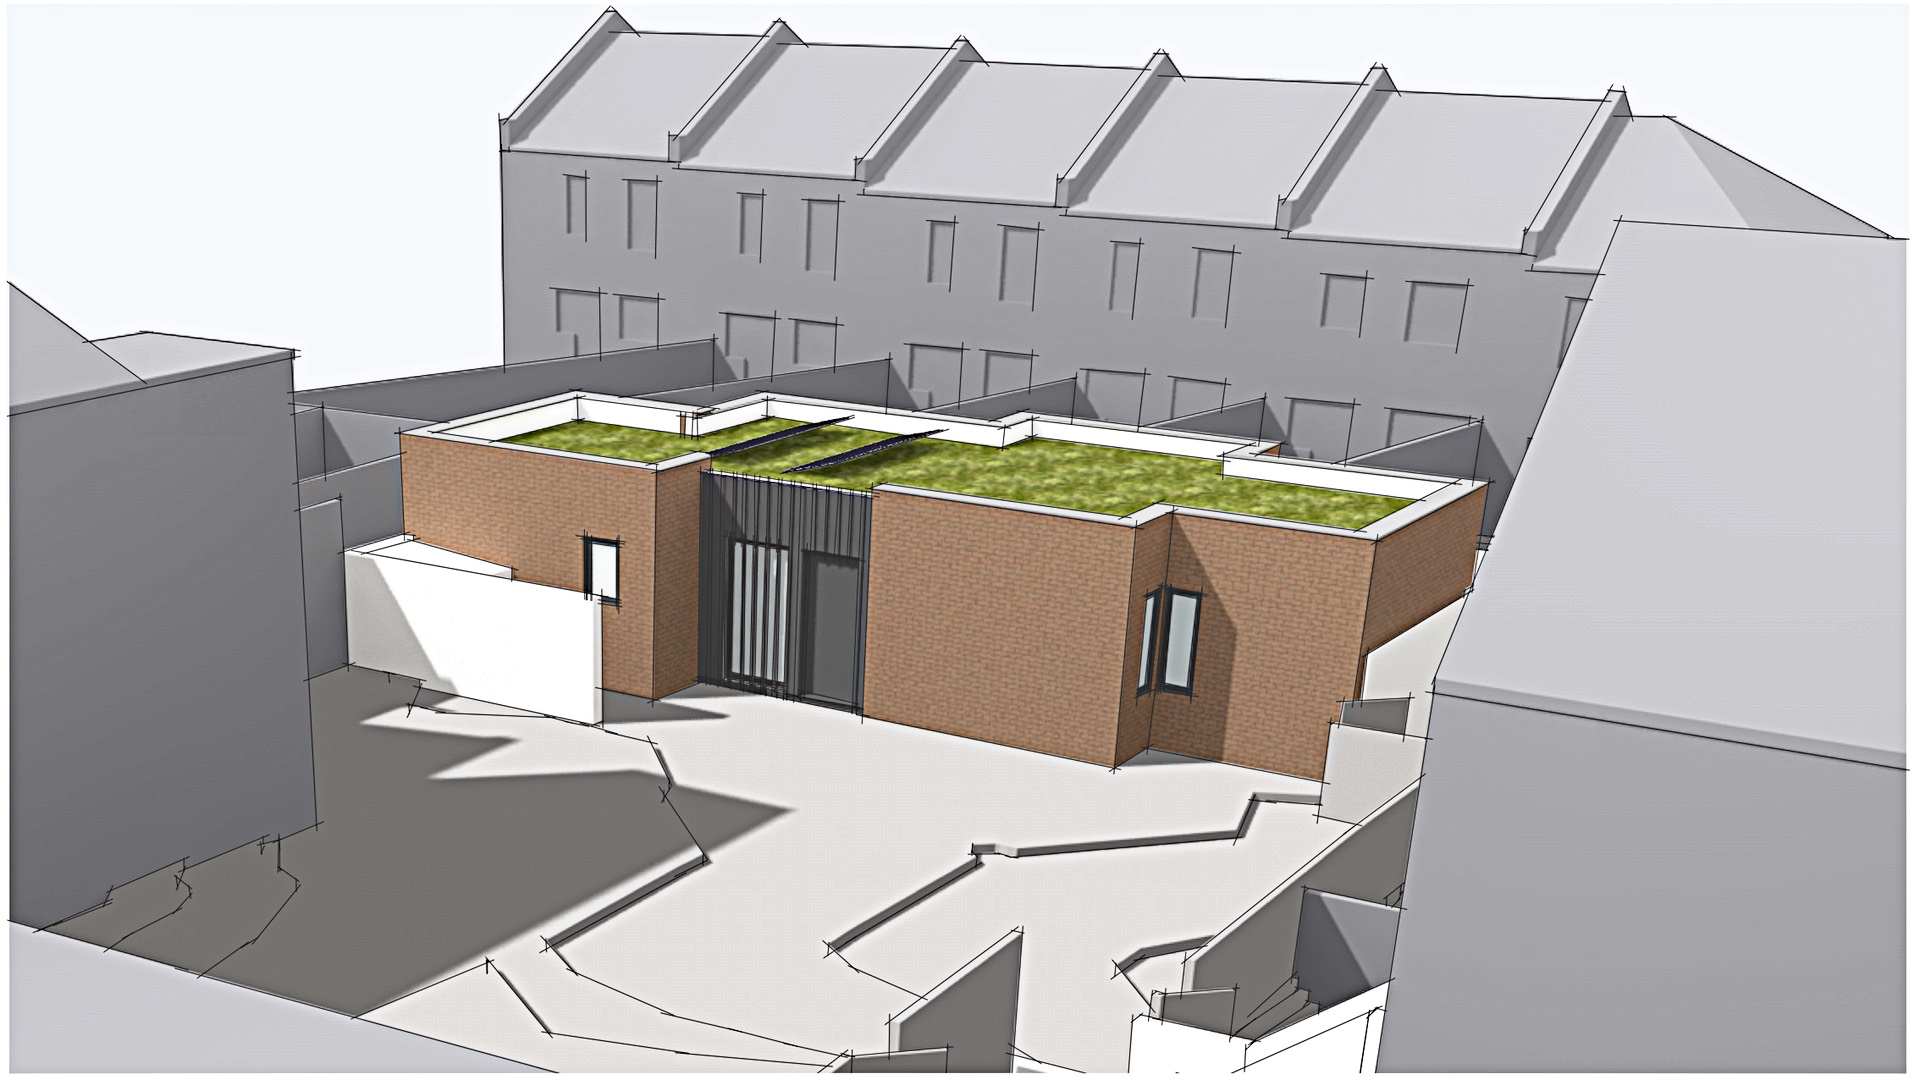 Planning permission granted for new build in Eastville, Bristol